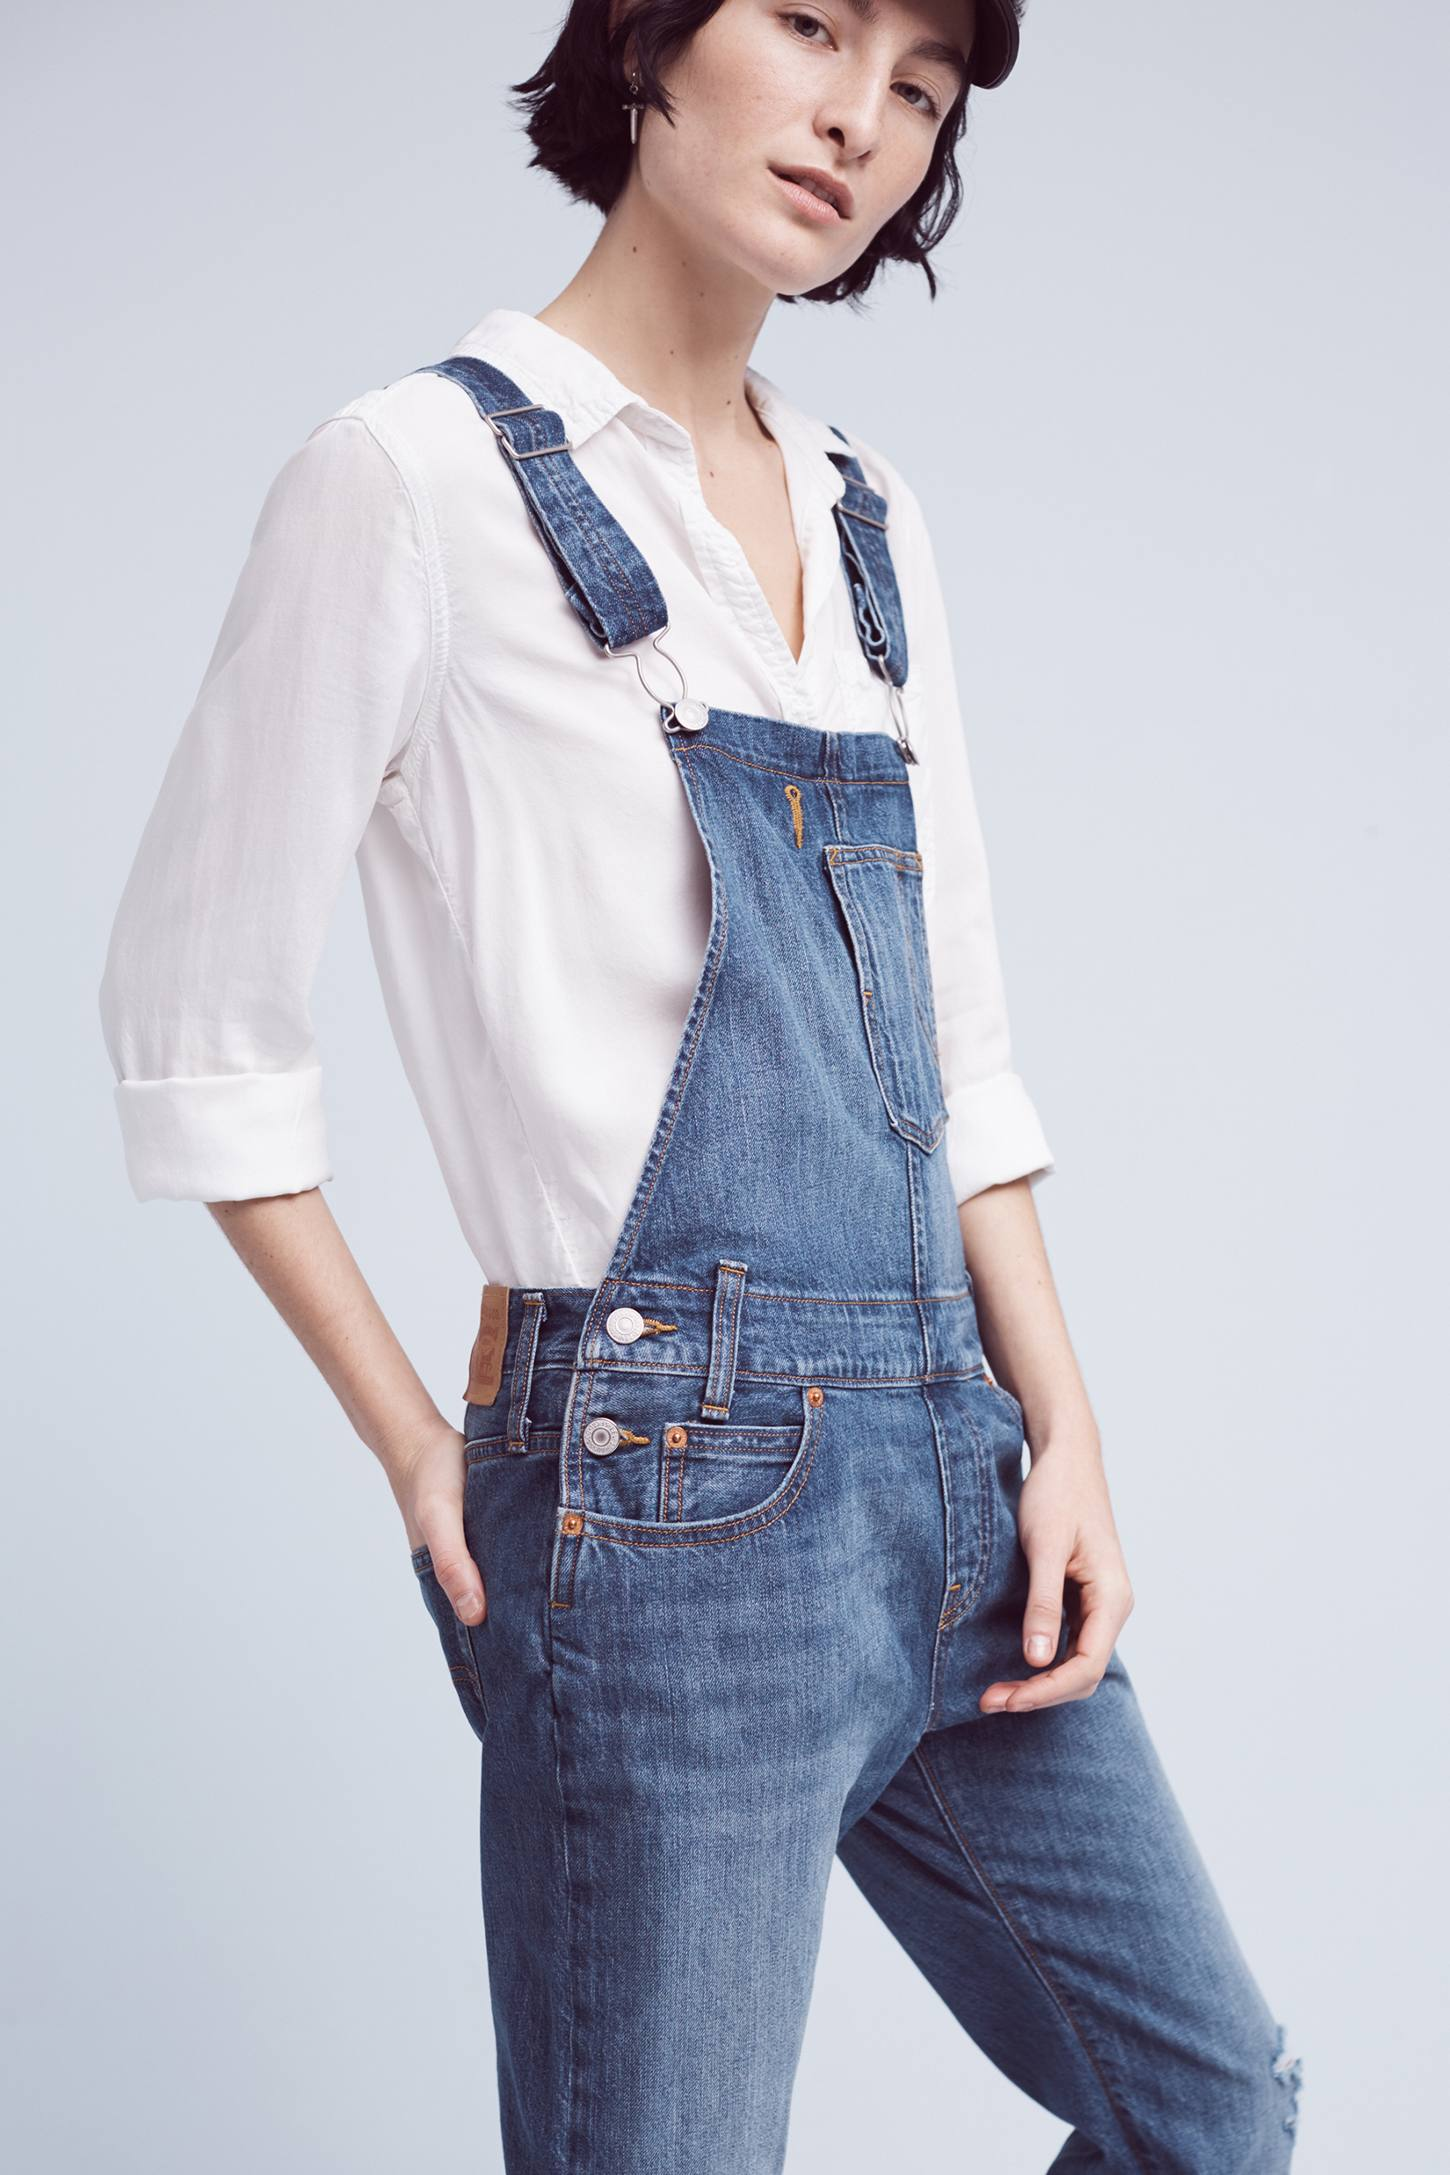 Overalls Are Making A Comeback As The Latest Fashion Trend: Levi's Heritage Overalls